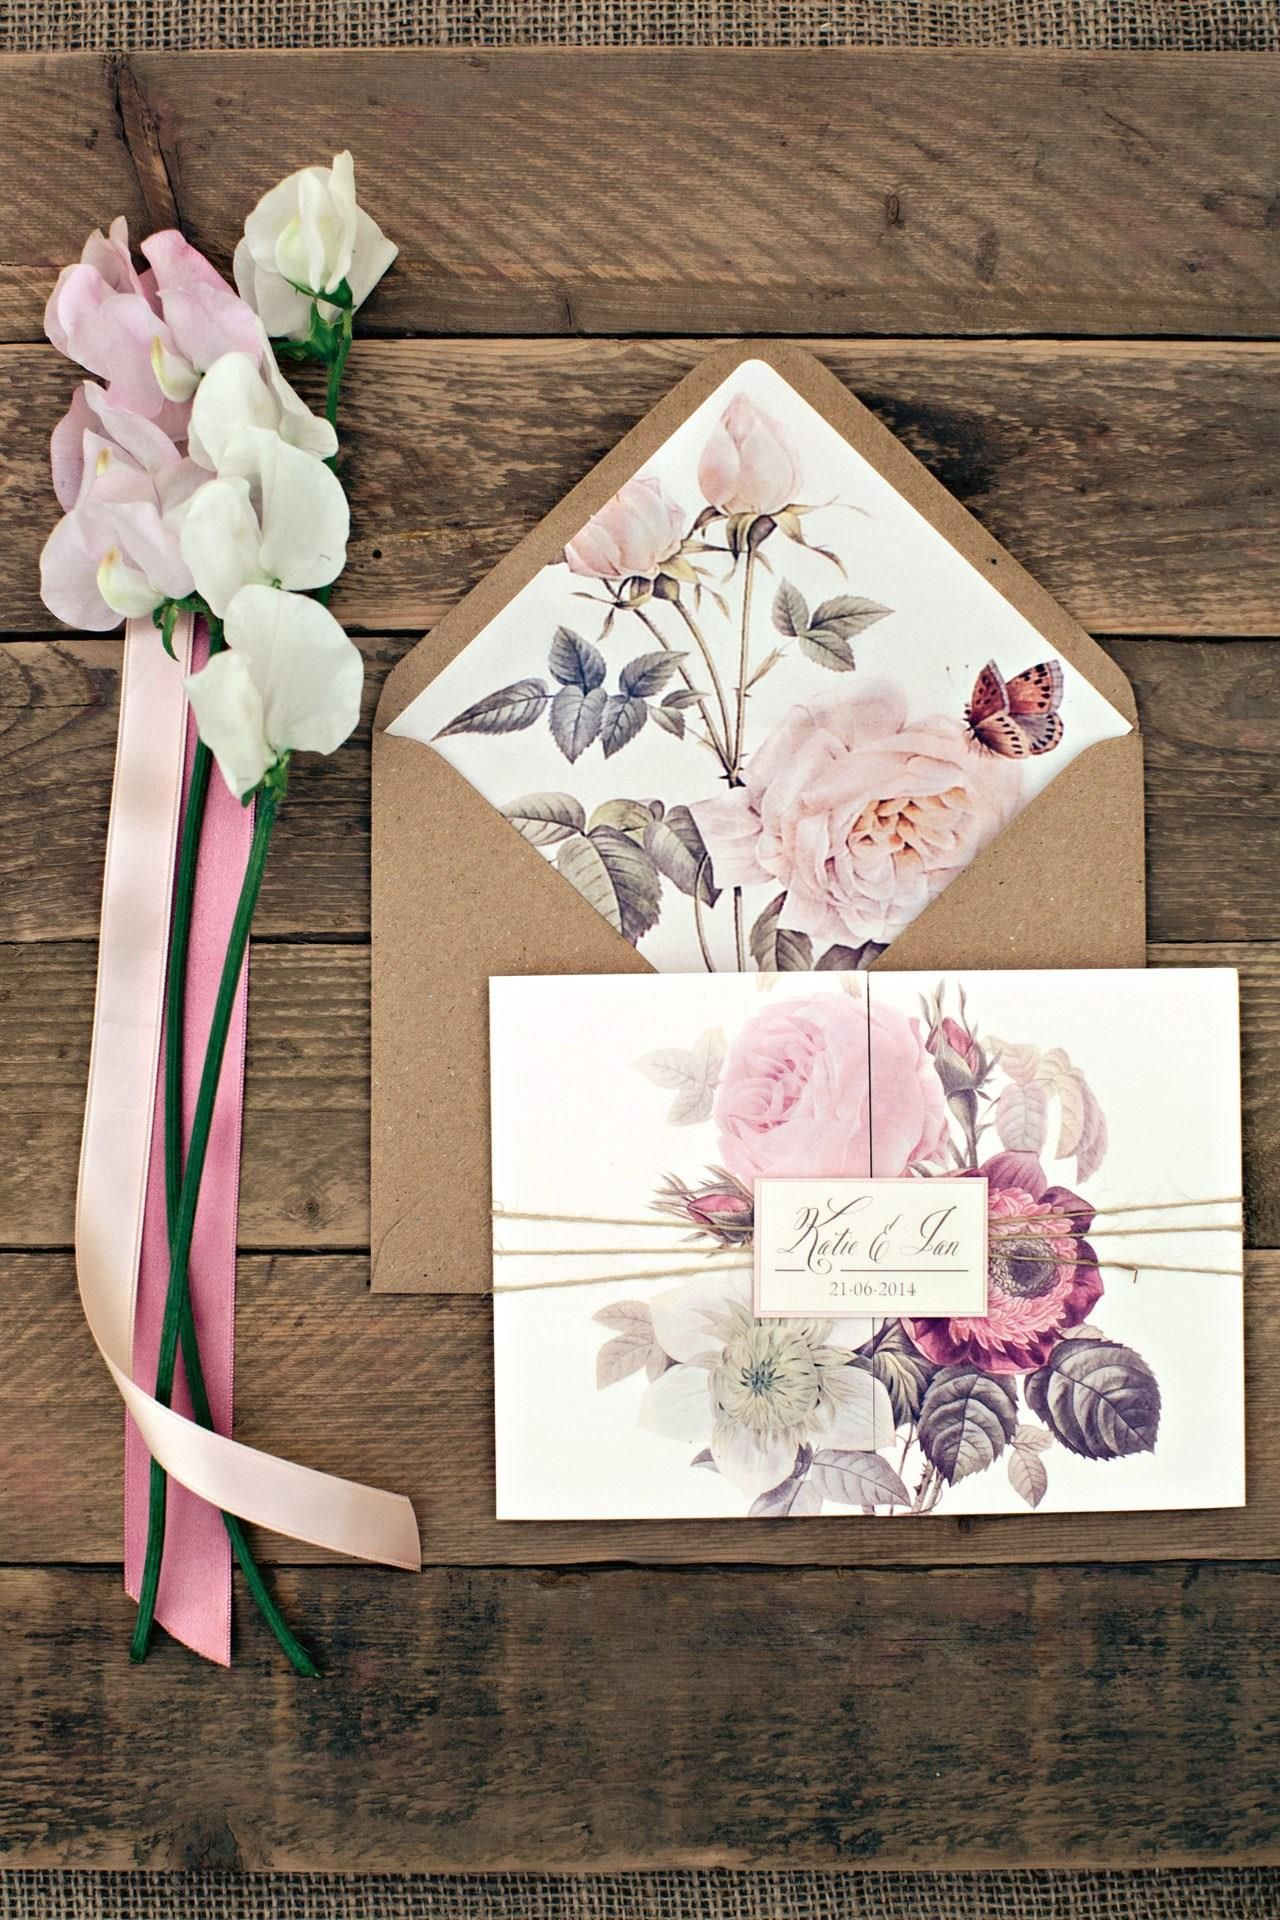 Rustic Farm Wedding (BridesMagazine.co.uk) | Envelopes, Wedding and ...